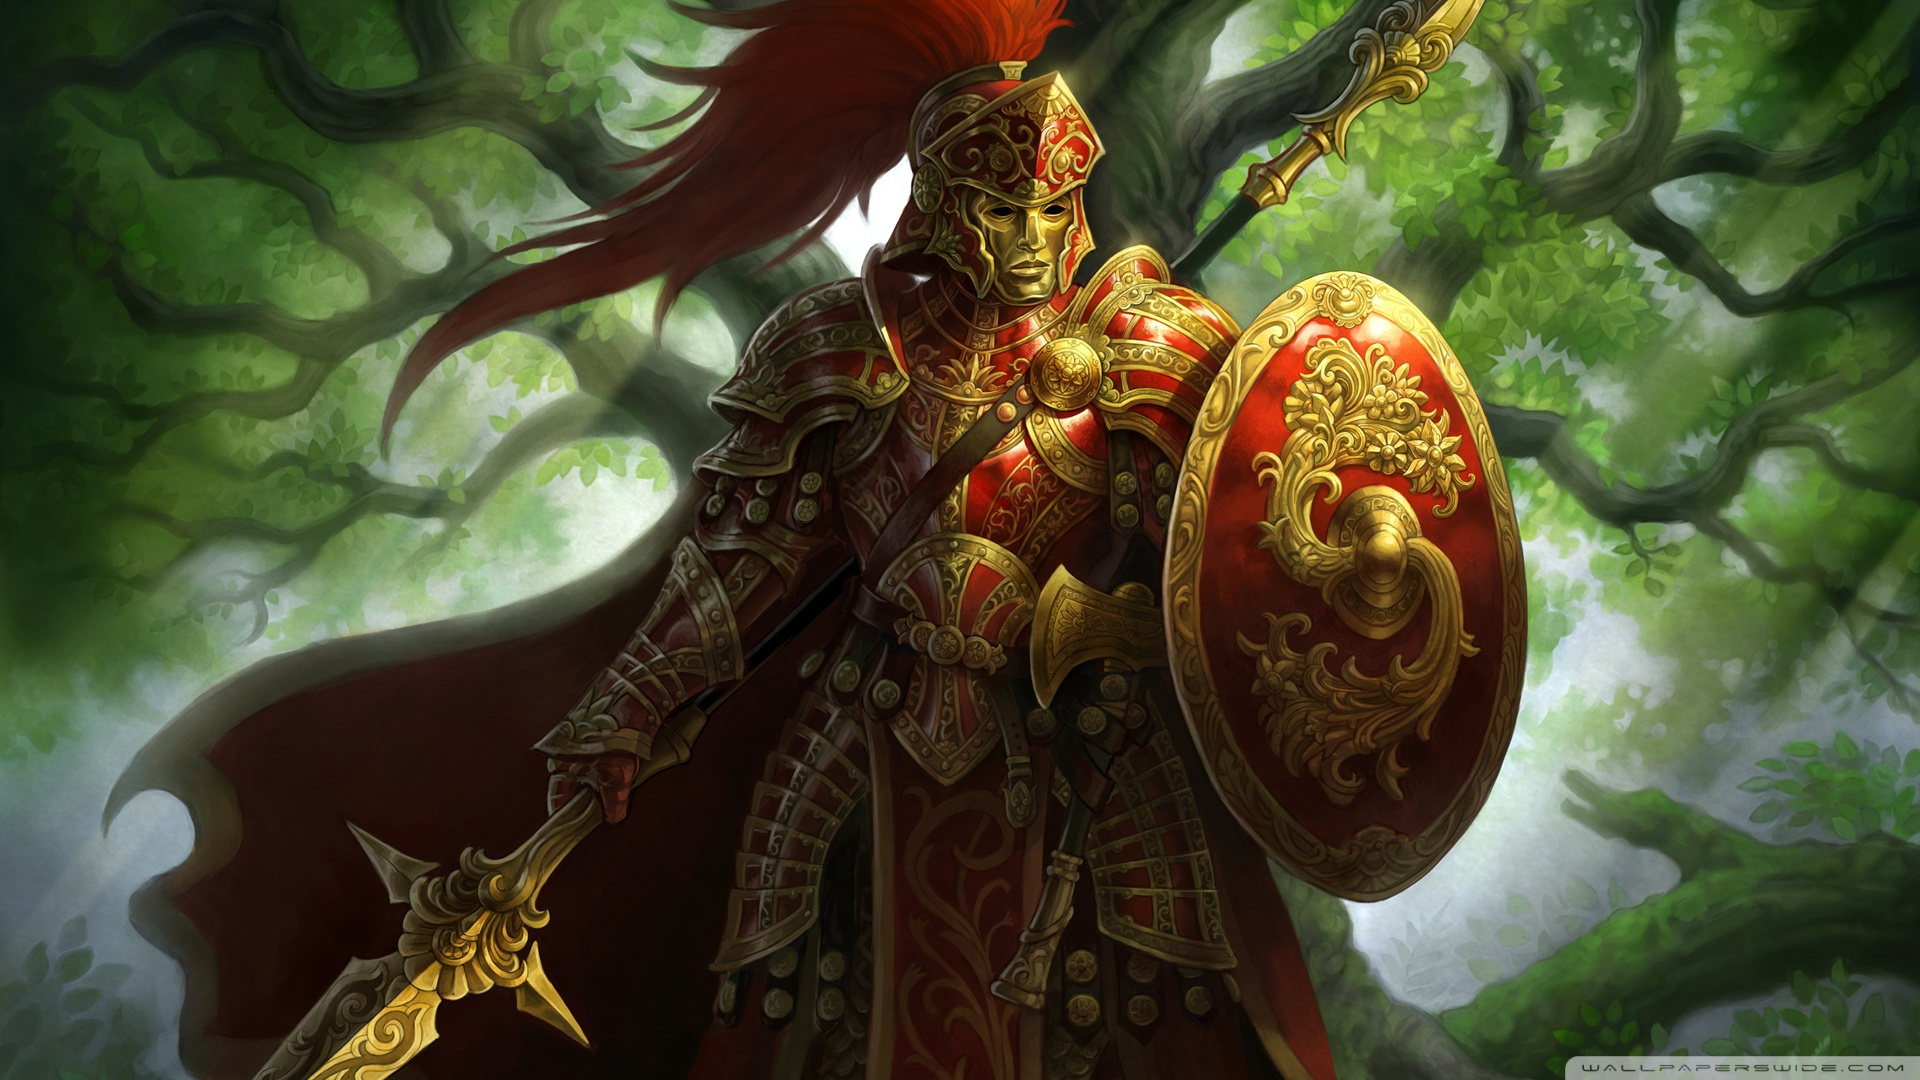 fantasy warrior hd desktop wallpaper : high definition